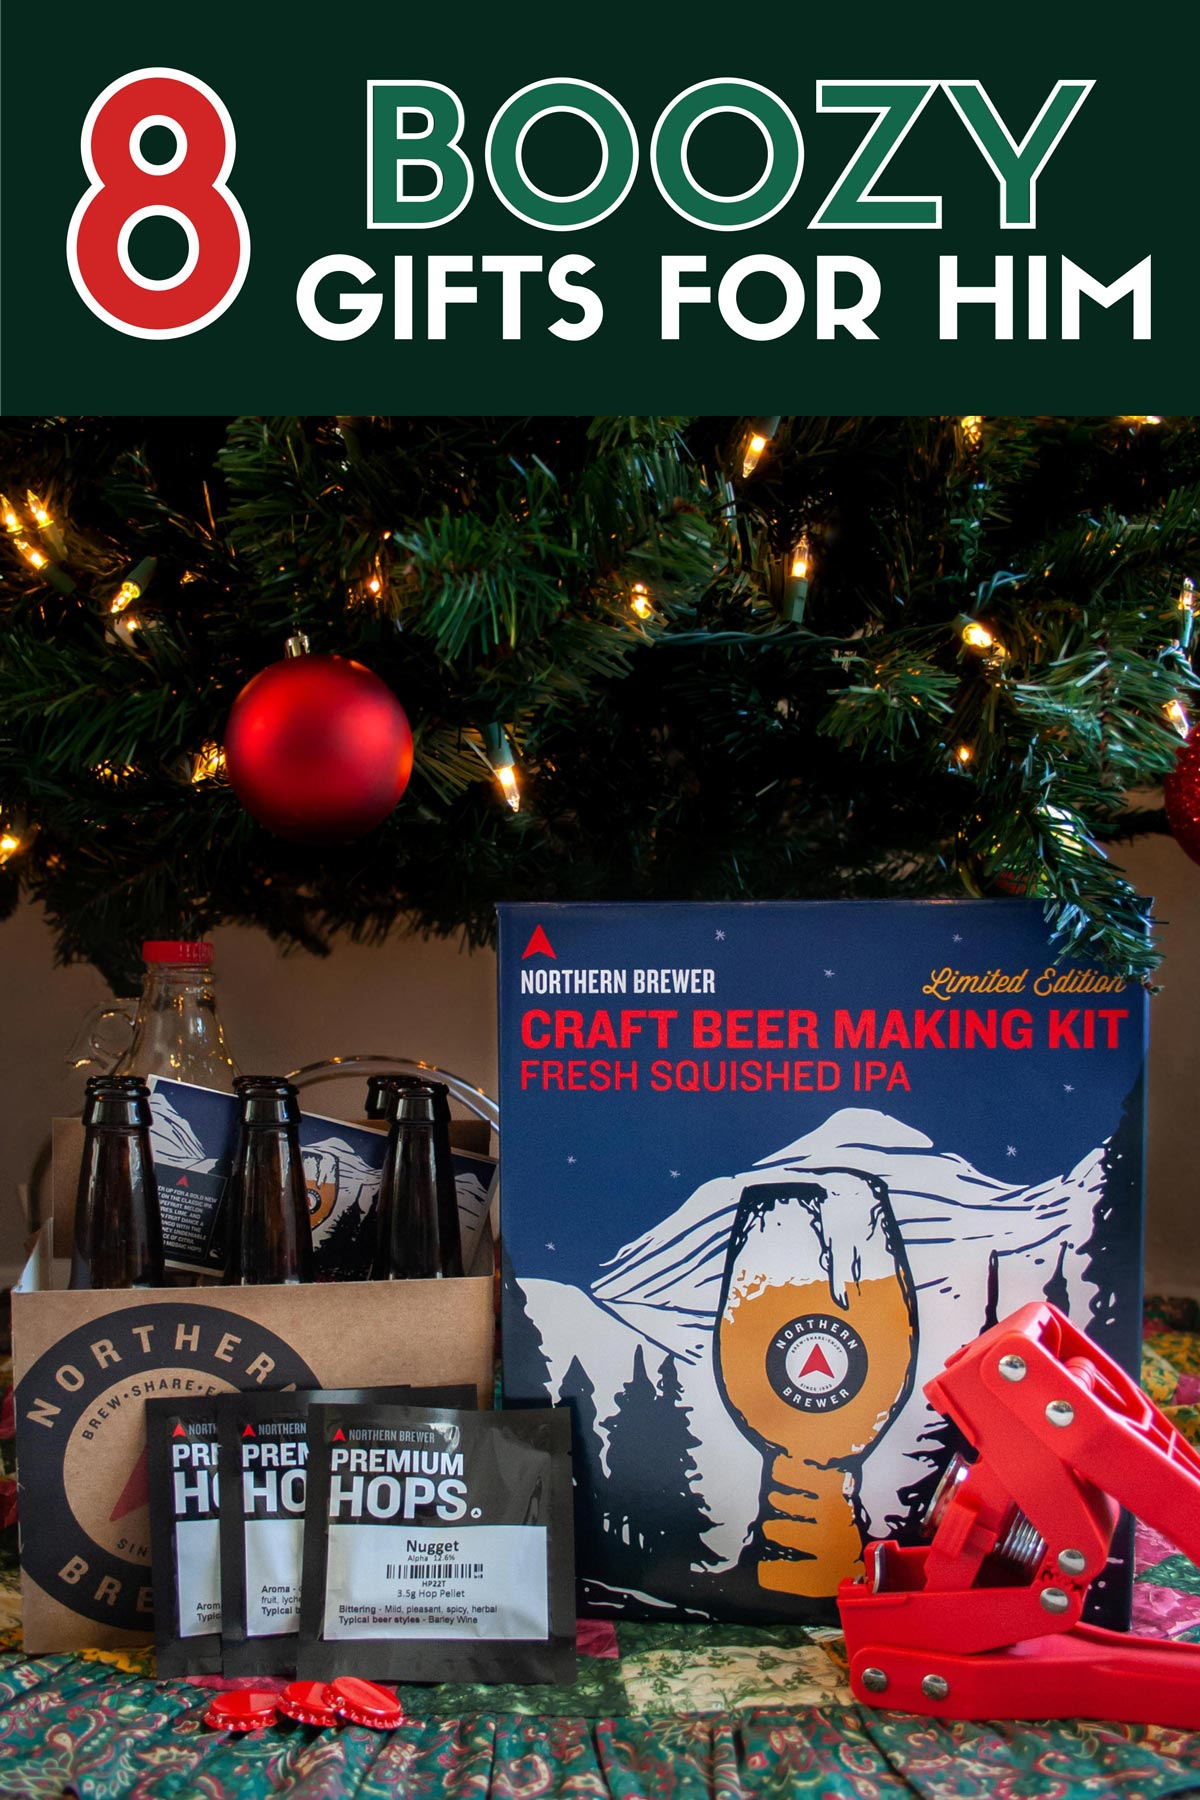 8 Boozy Holiday Gifts For Him. These holiday gifts for him are perfect gifts for beer lovers or gifts for cocktail lovers. Including the Northern Brewer Craft Beer Making Kit Limited Edition. #sponsored #GiftGuide #Christmas #Holidays #GiftsForHim #Cocktails #Beer #ElleTalk